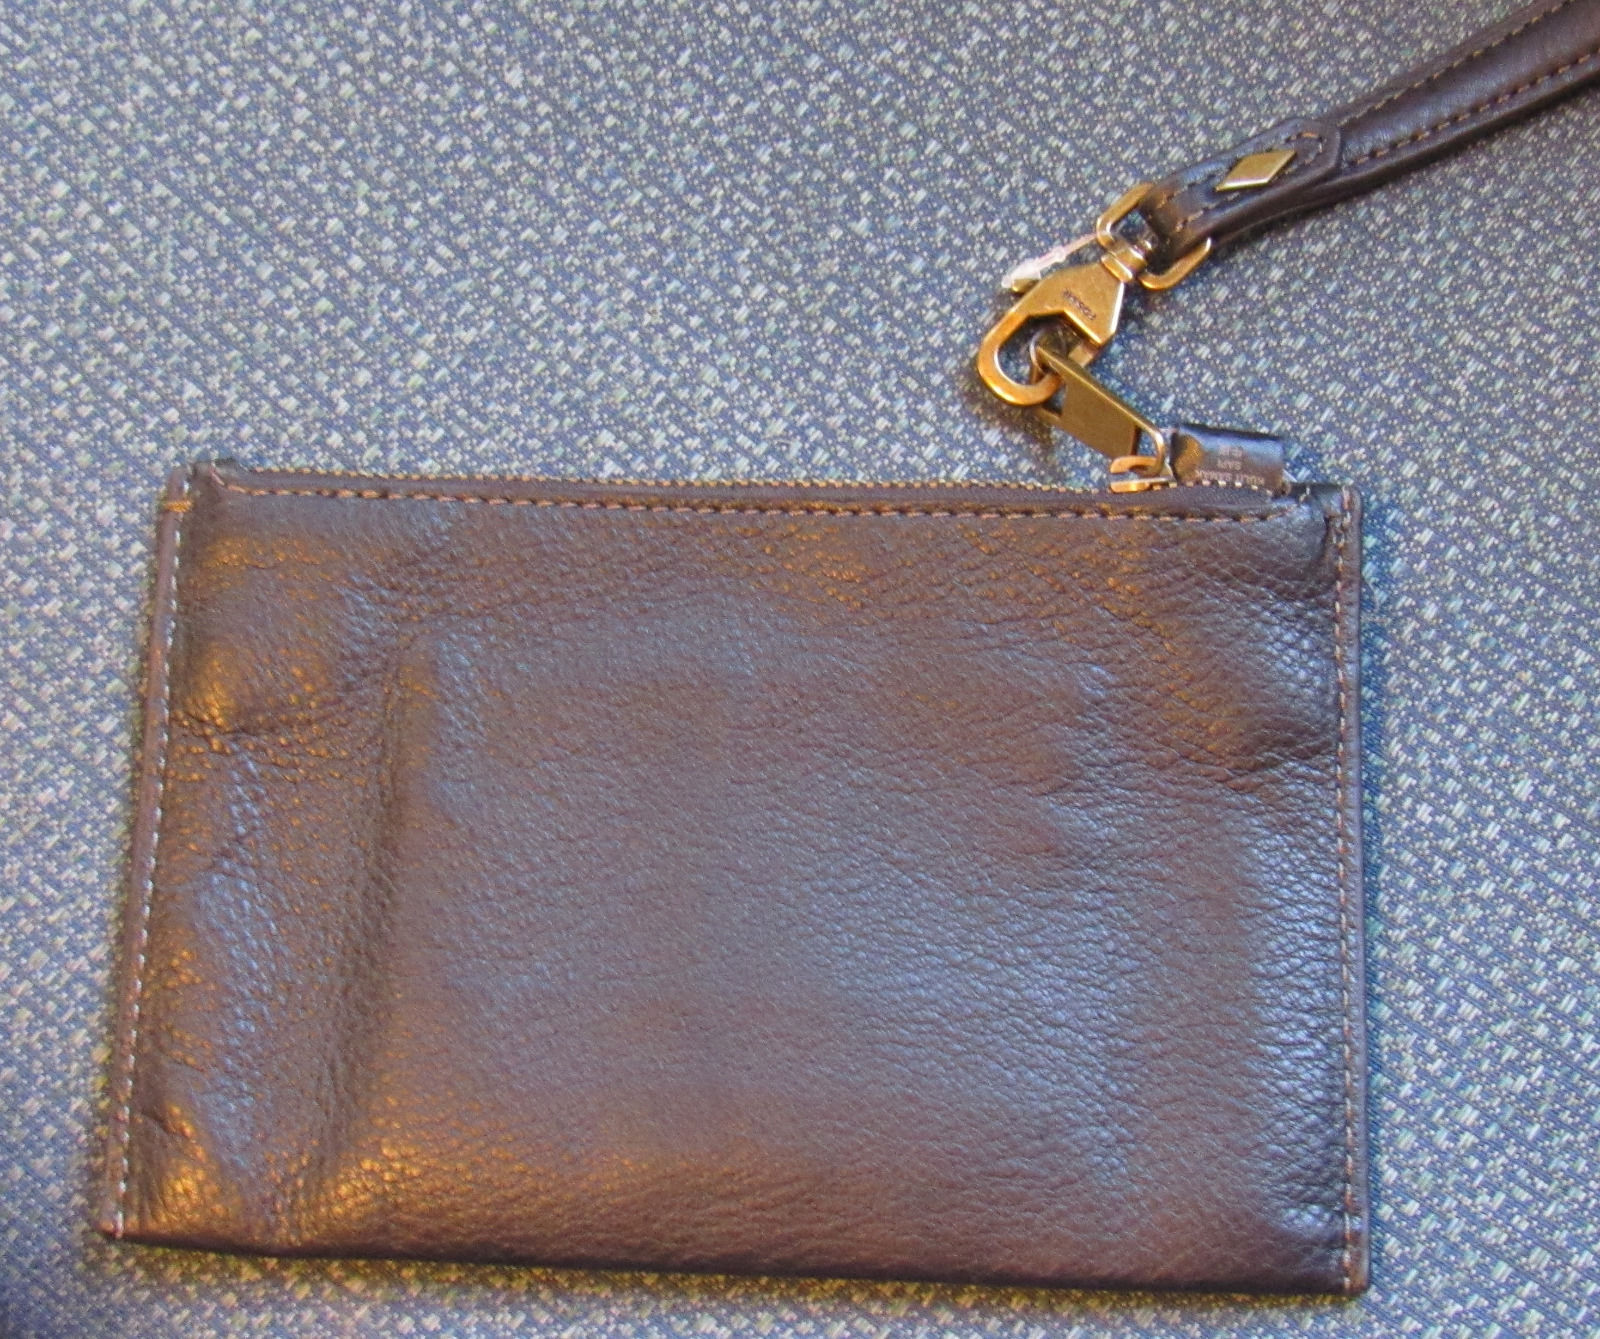 FOSSIL WOMENS WRISTLET WALLET TOP ZIP CLOSE GENUINE 100%LEATHER BLACK SOLID NEW